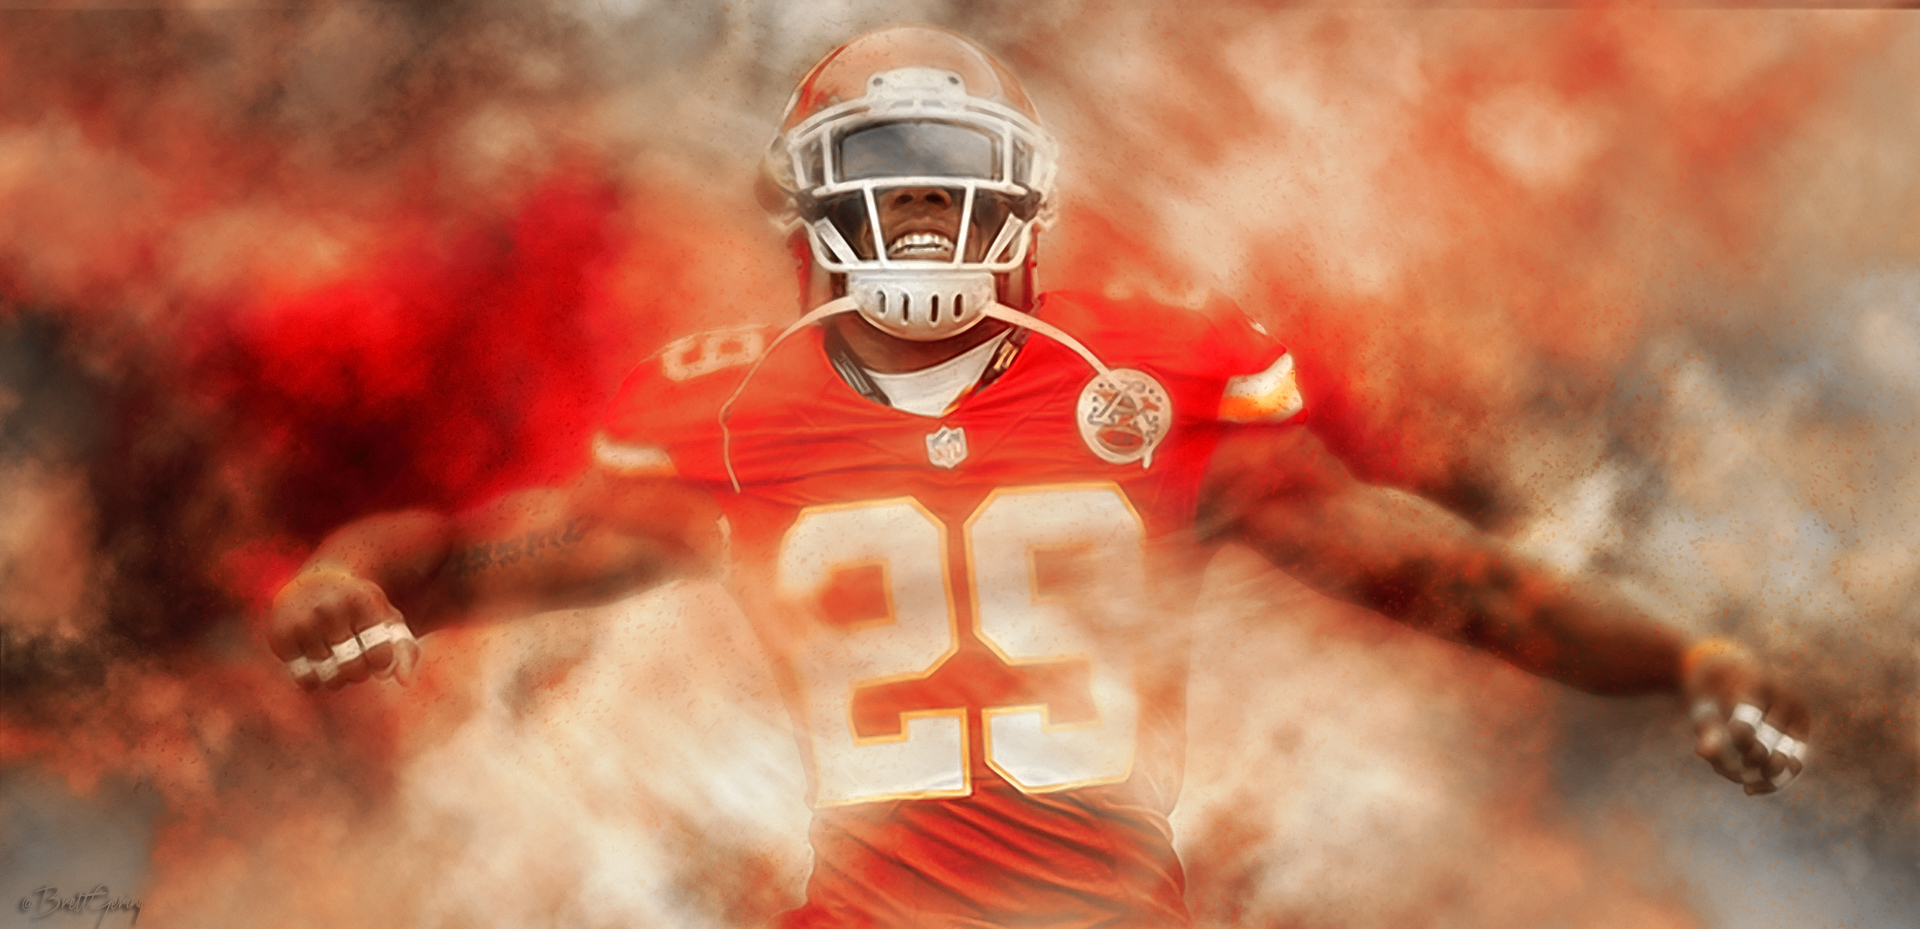 Eric Berry by BGering on DeviantArt